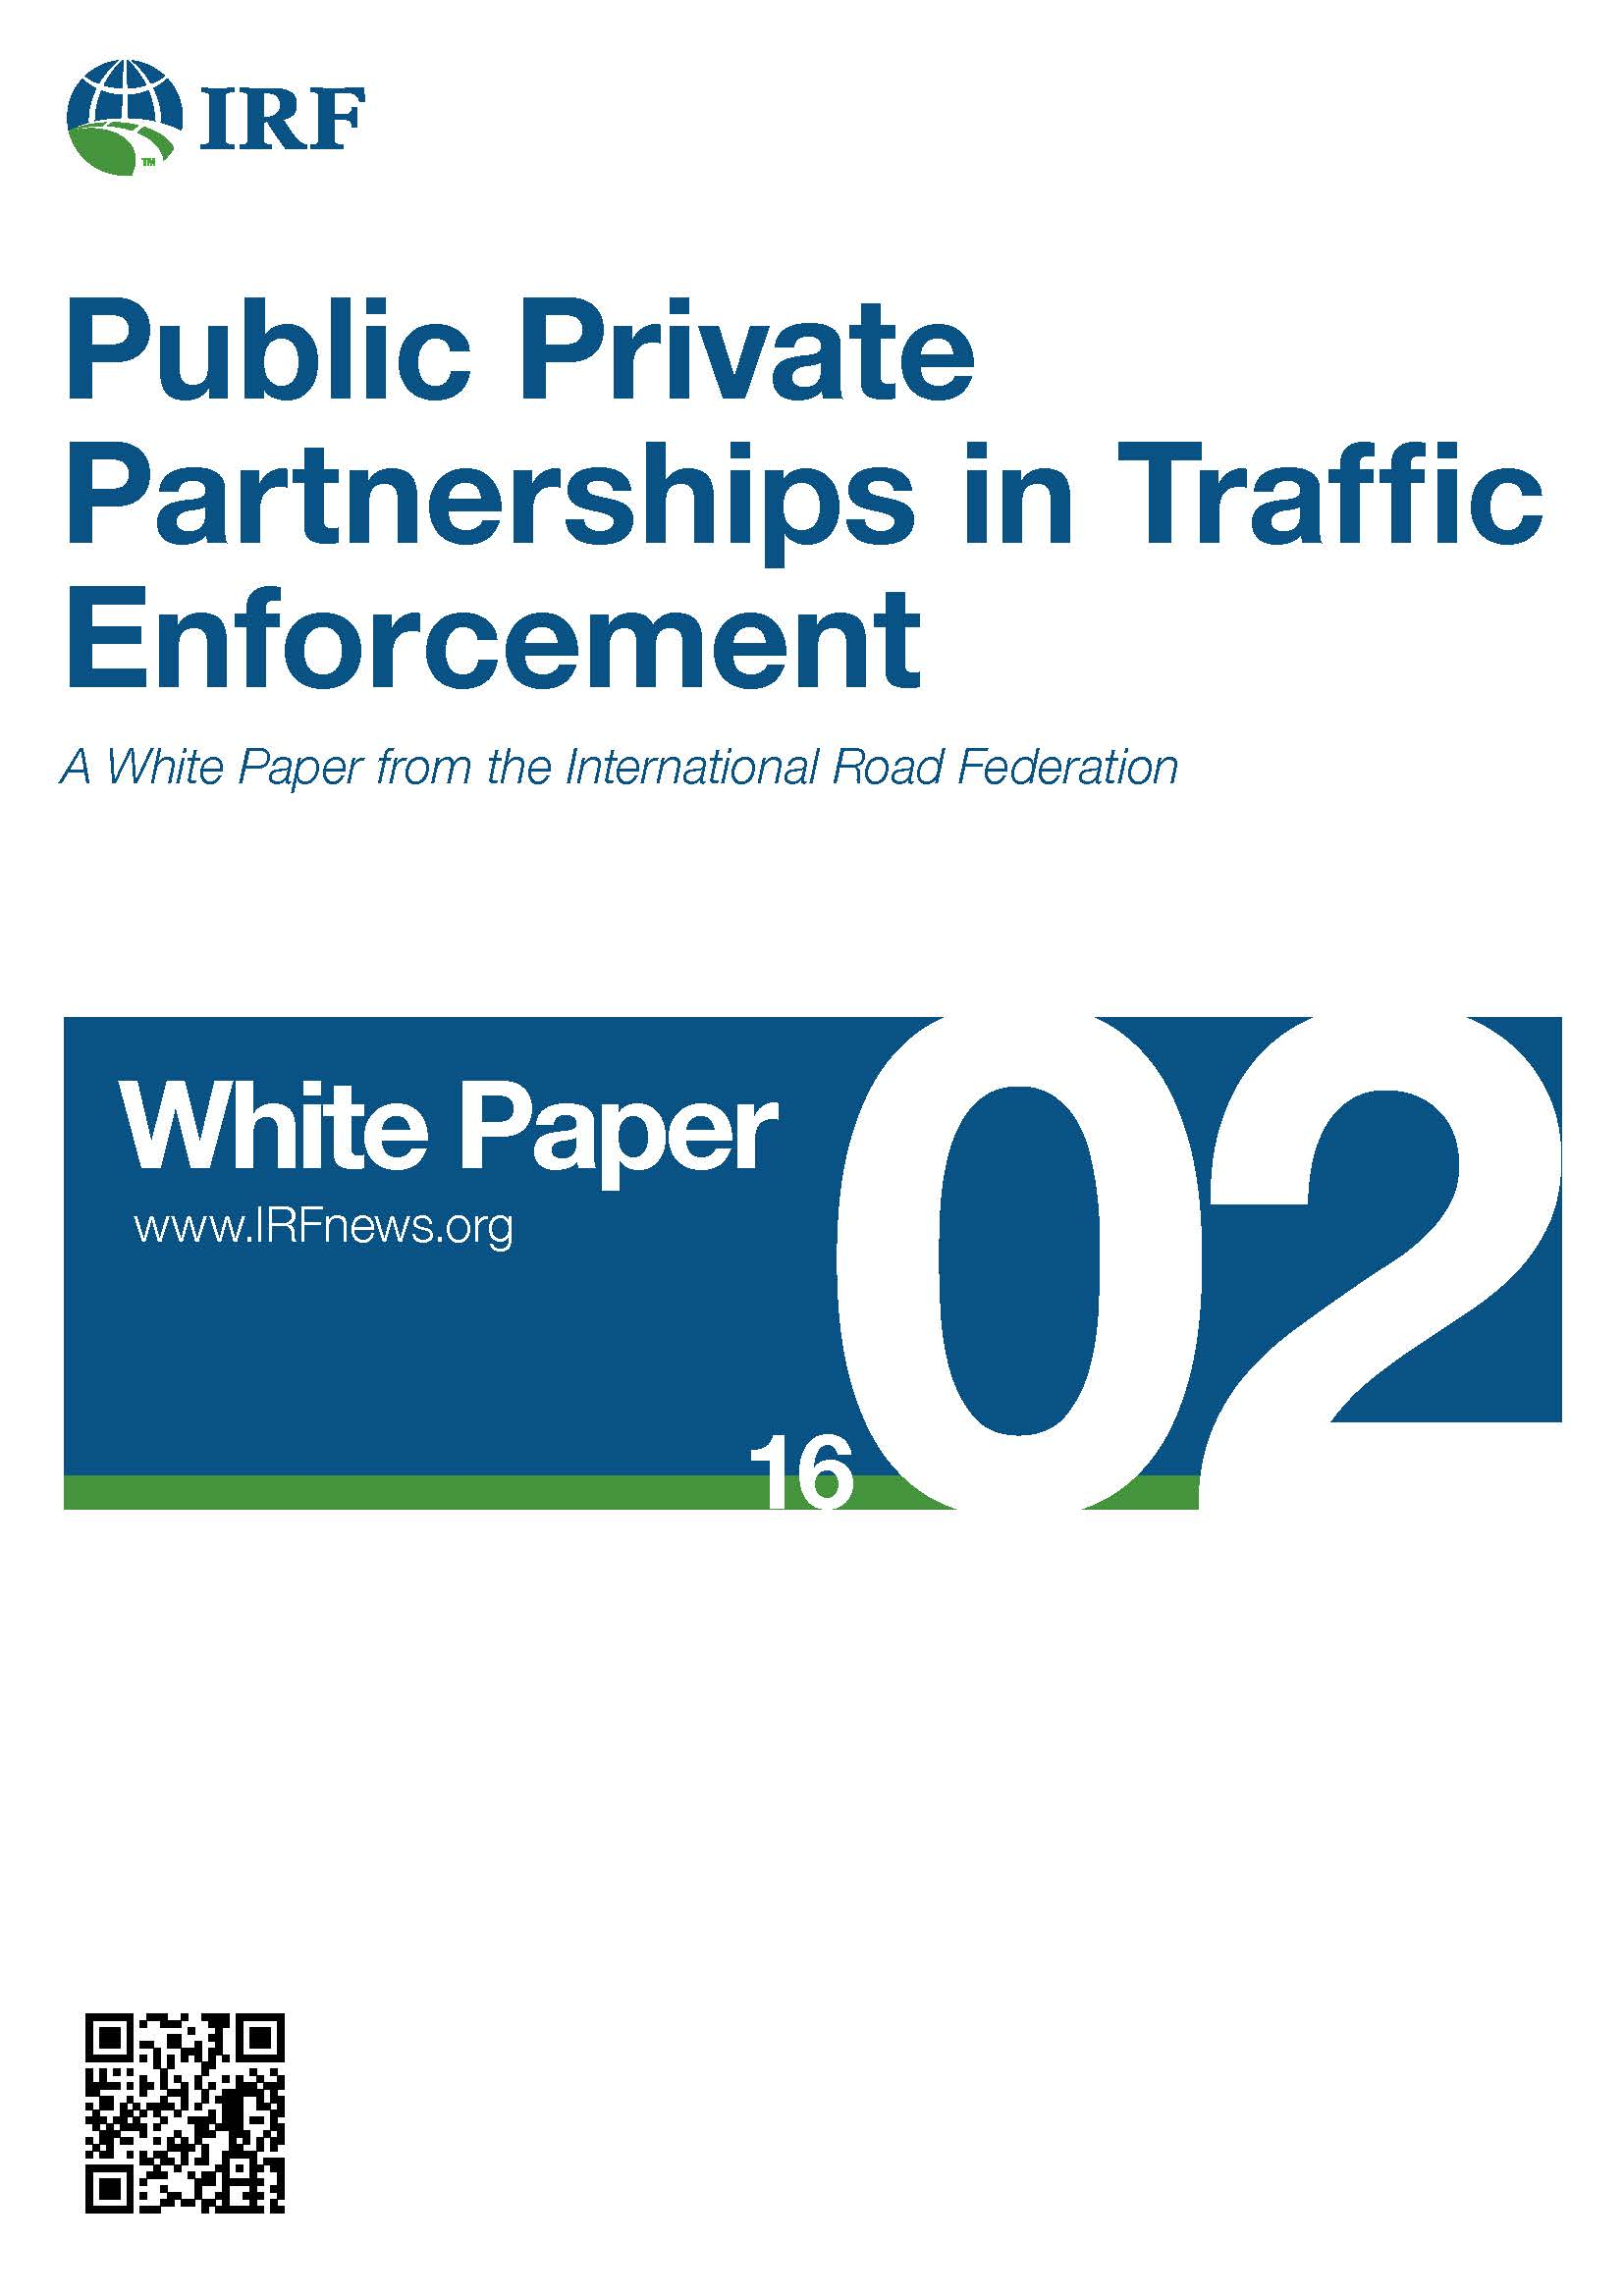 IRF White Papers